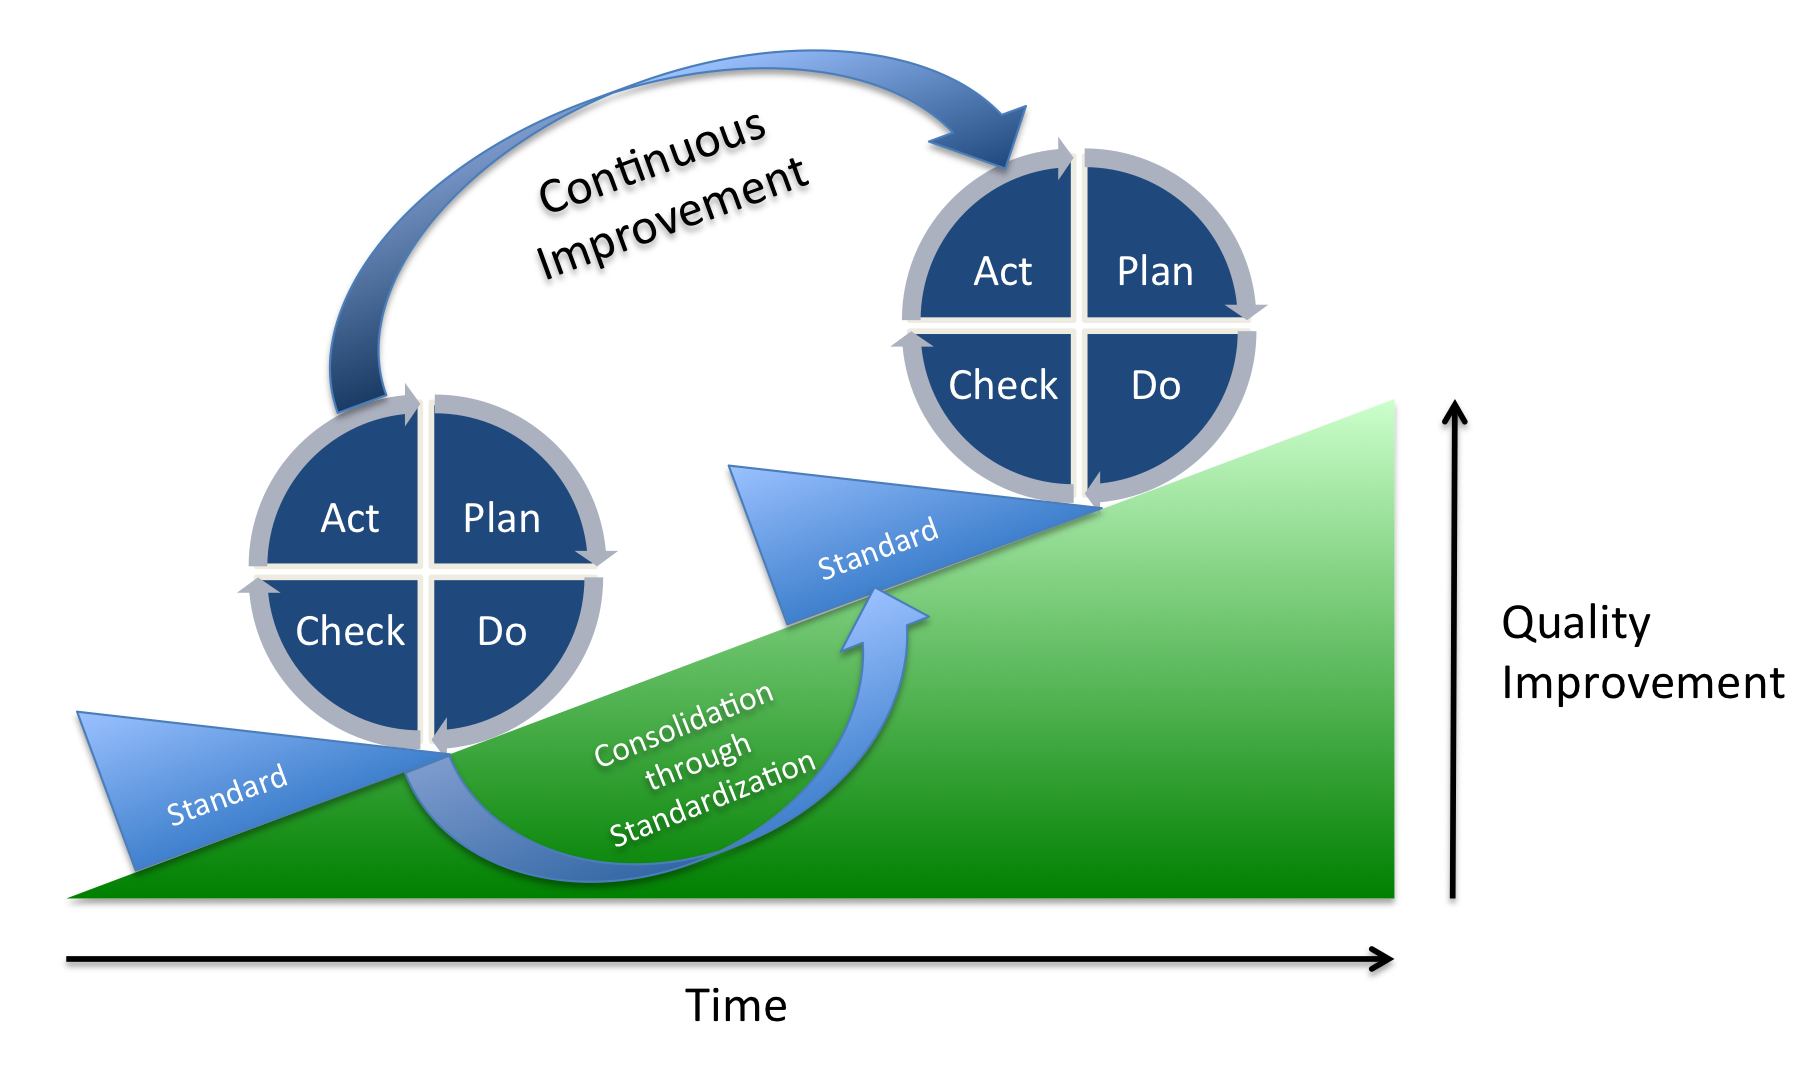 PDCA, Deming wheel, ISO, ISO 9001, Continuous improvement